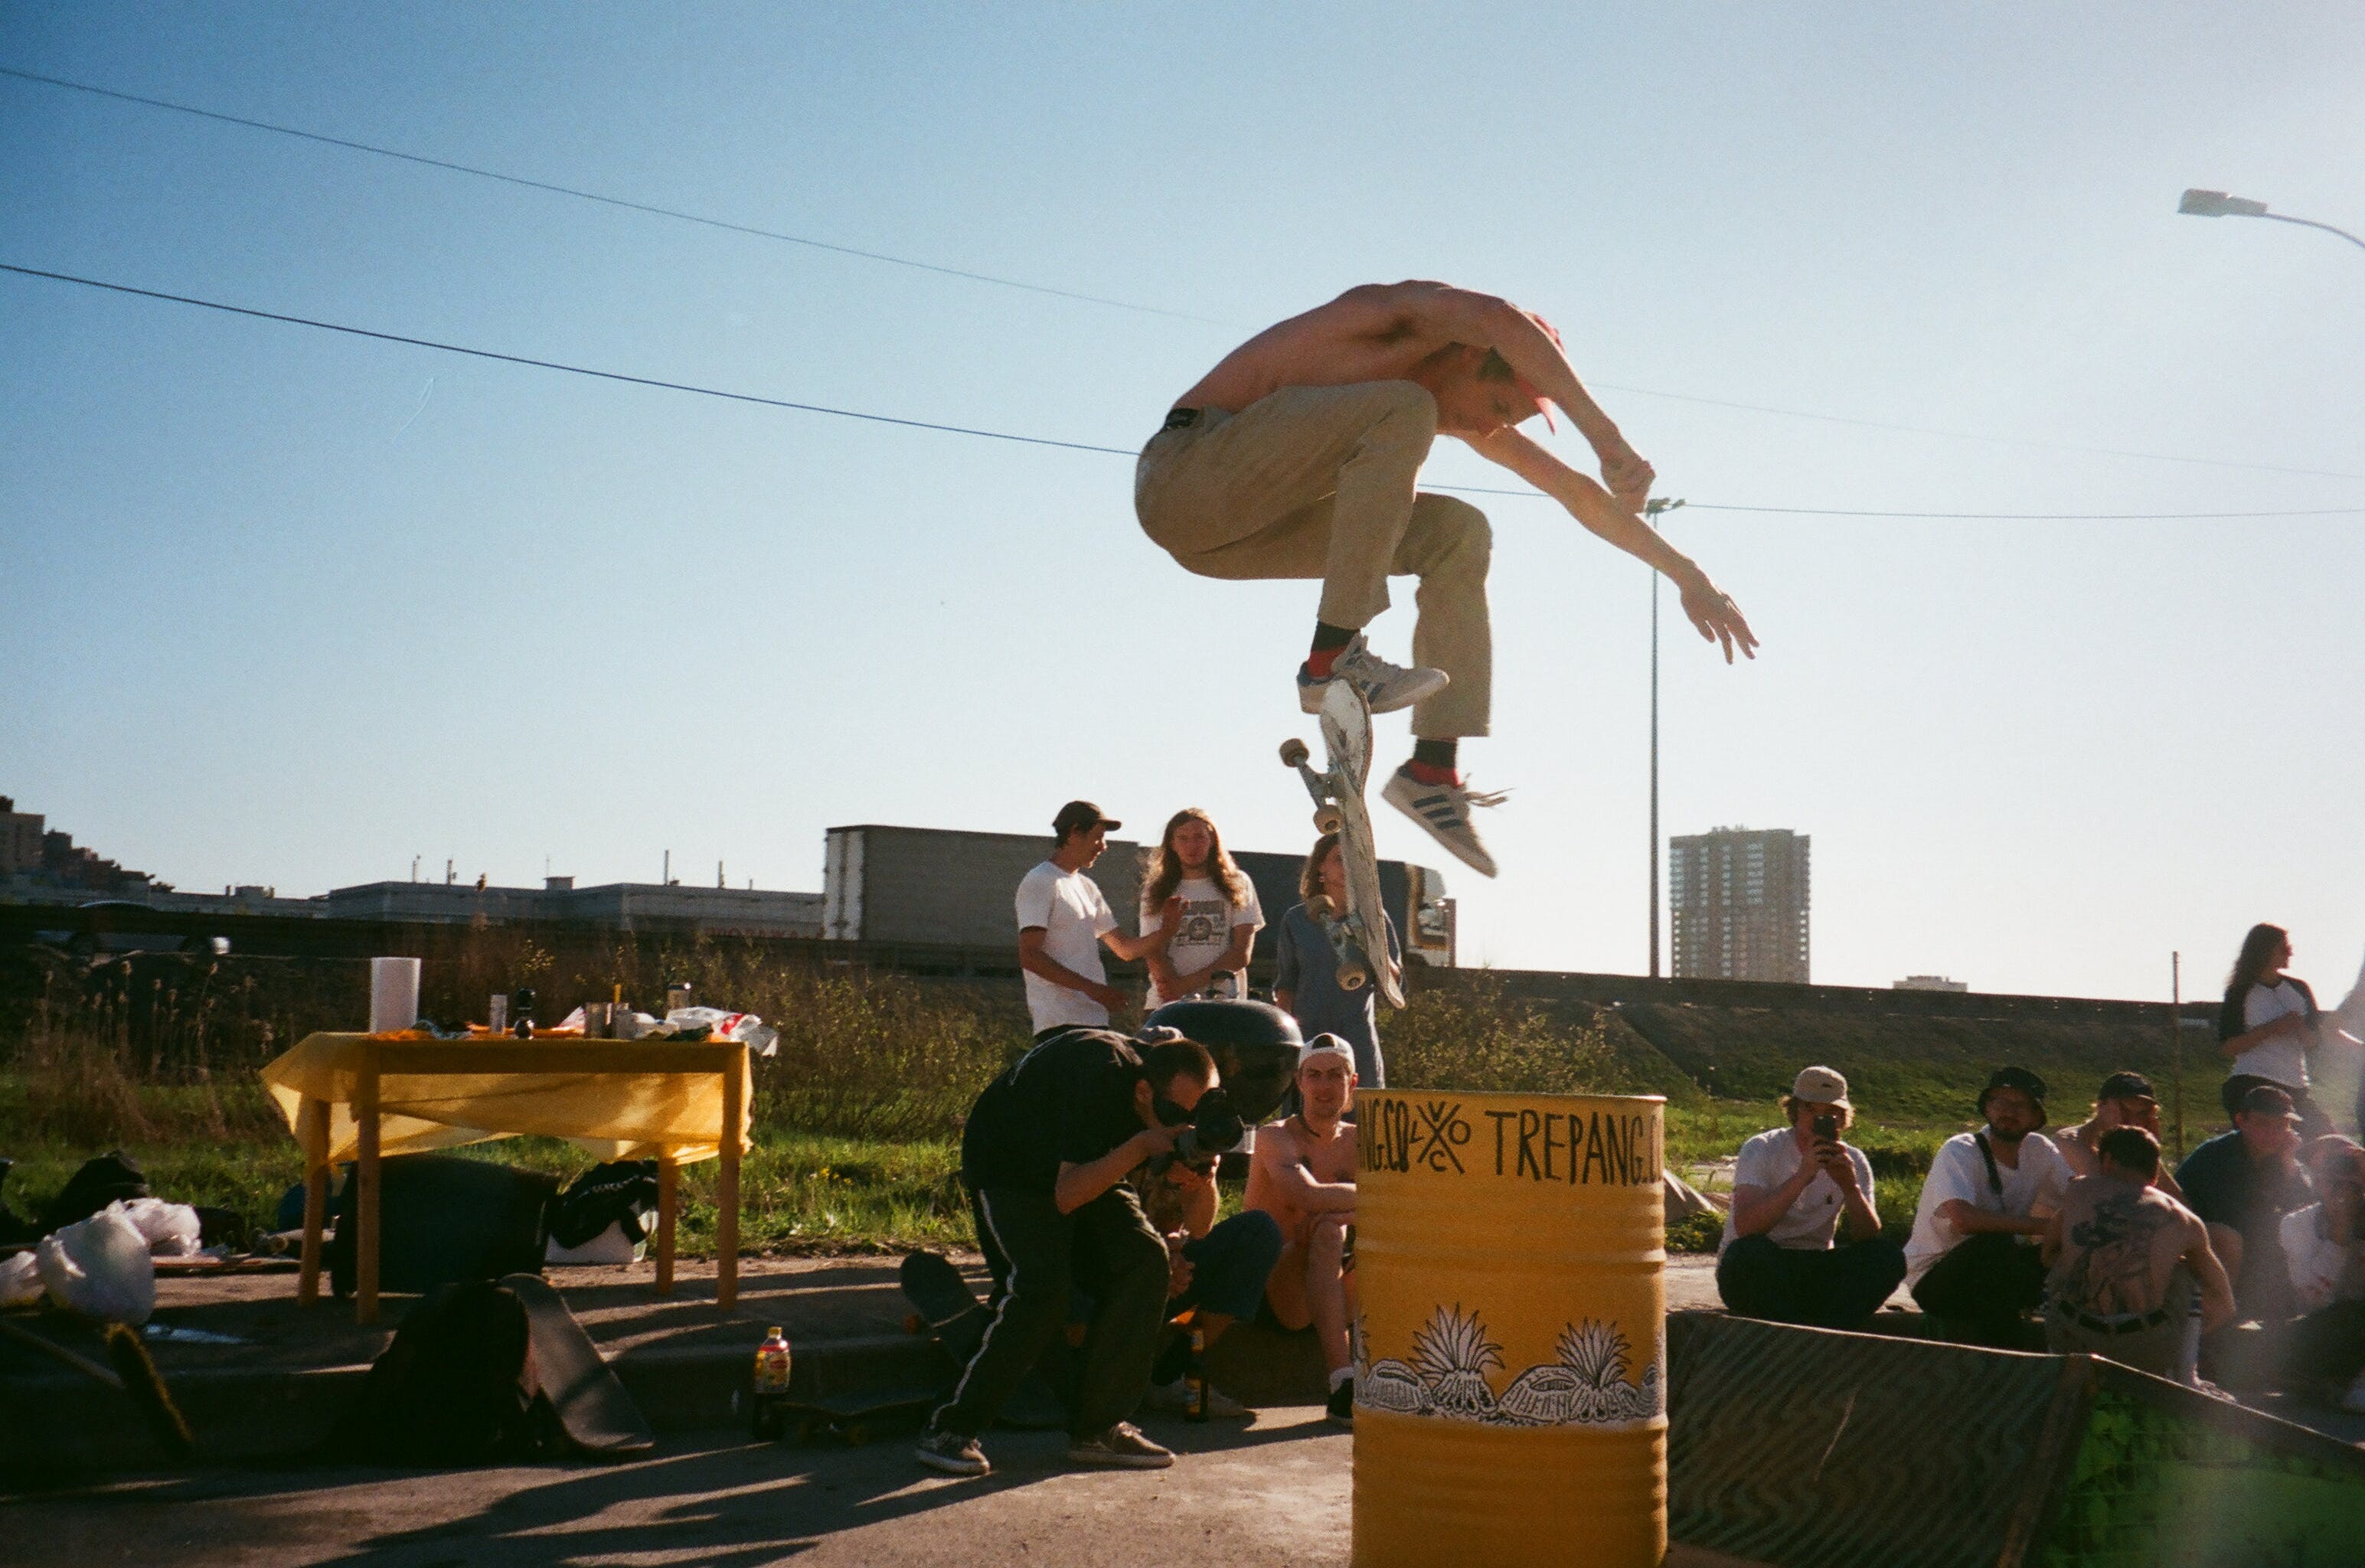 Person Performing Skateboard Trick